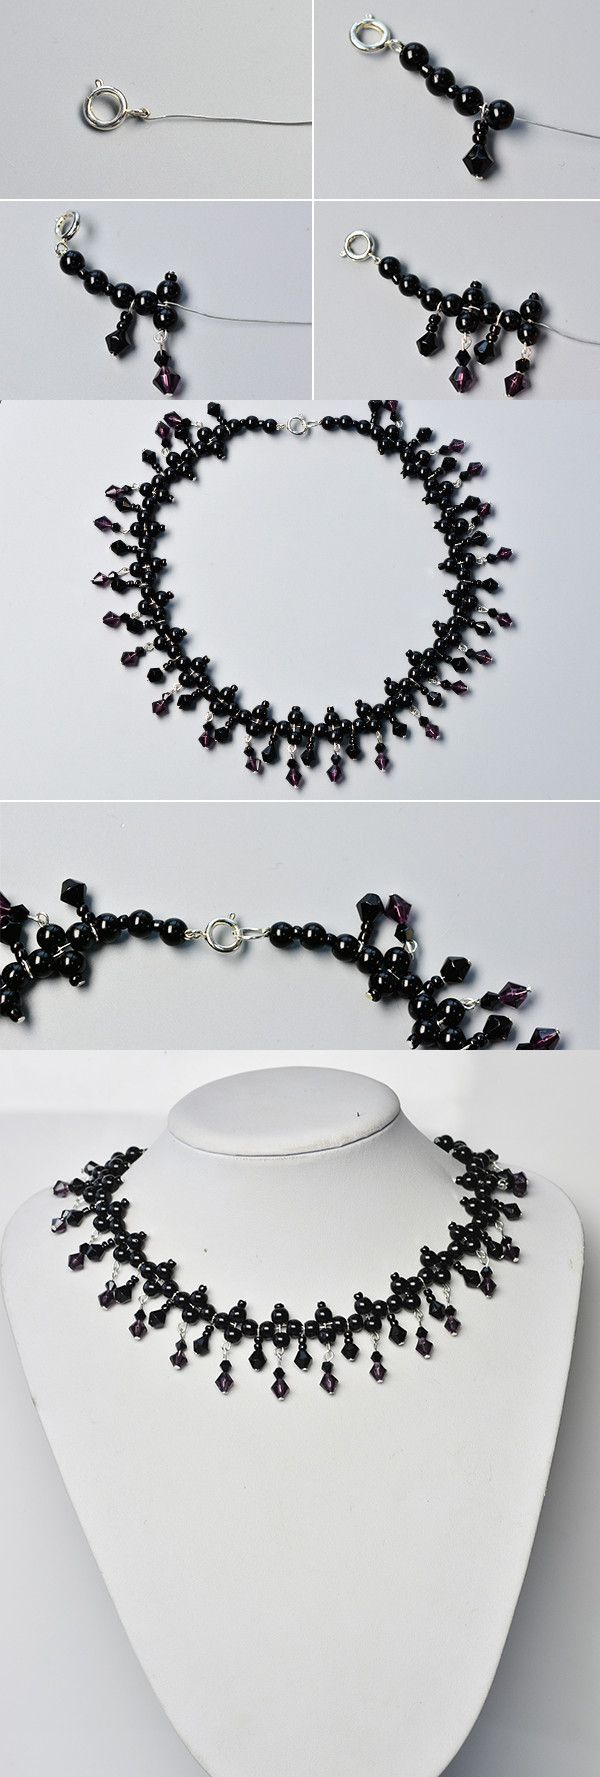 Like the black glass beads necklace?The tutorial will be published by LC.Pandahall.com soon.